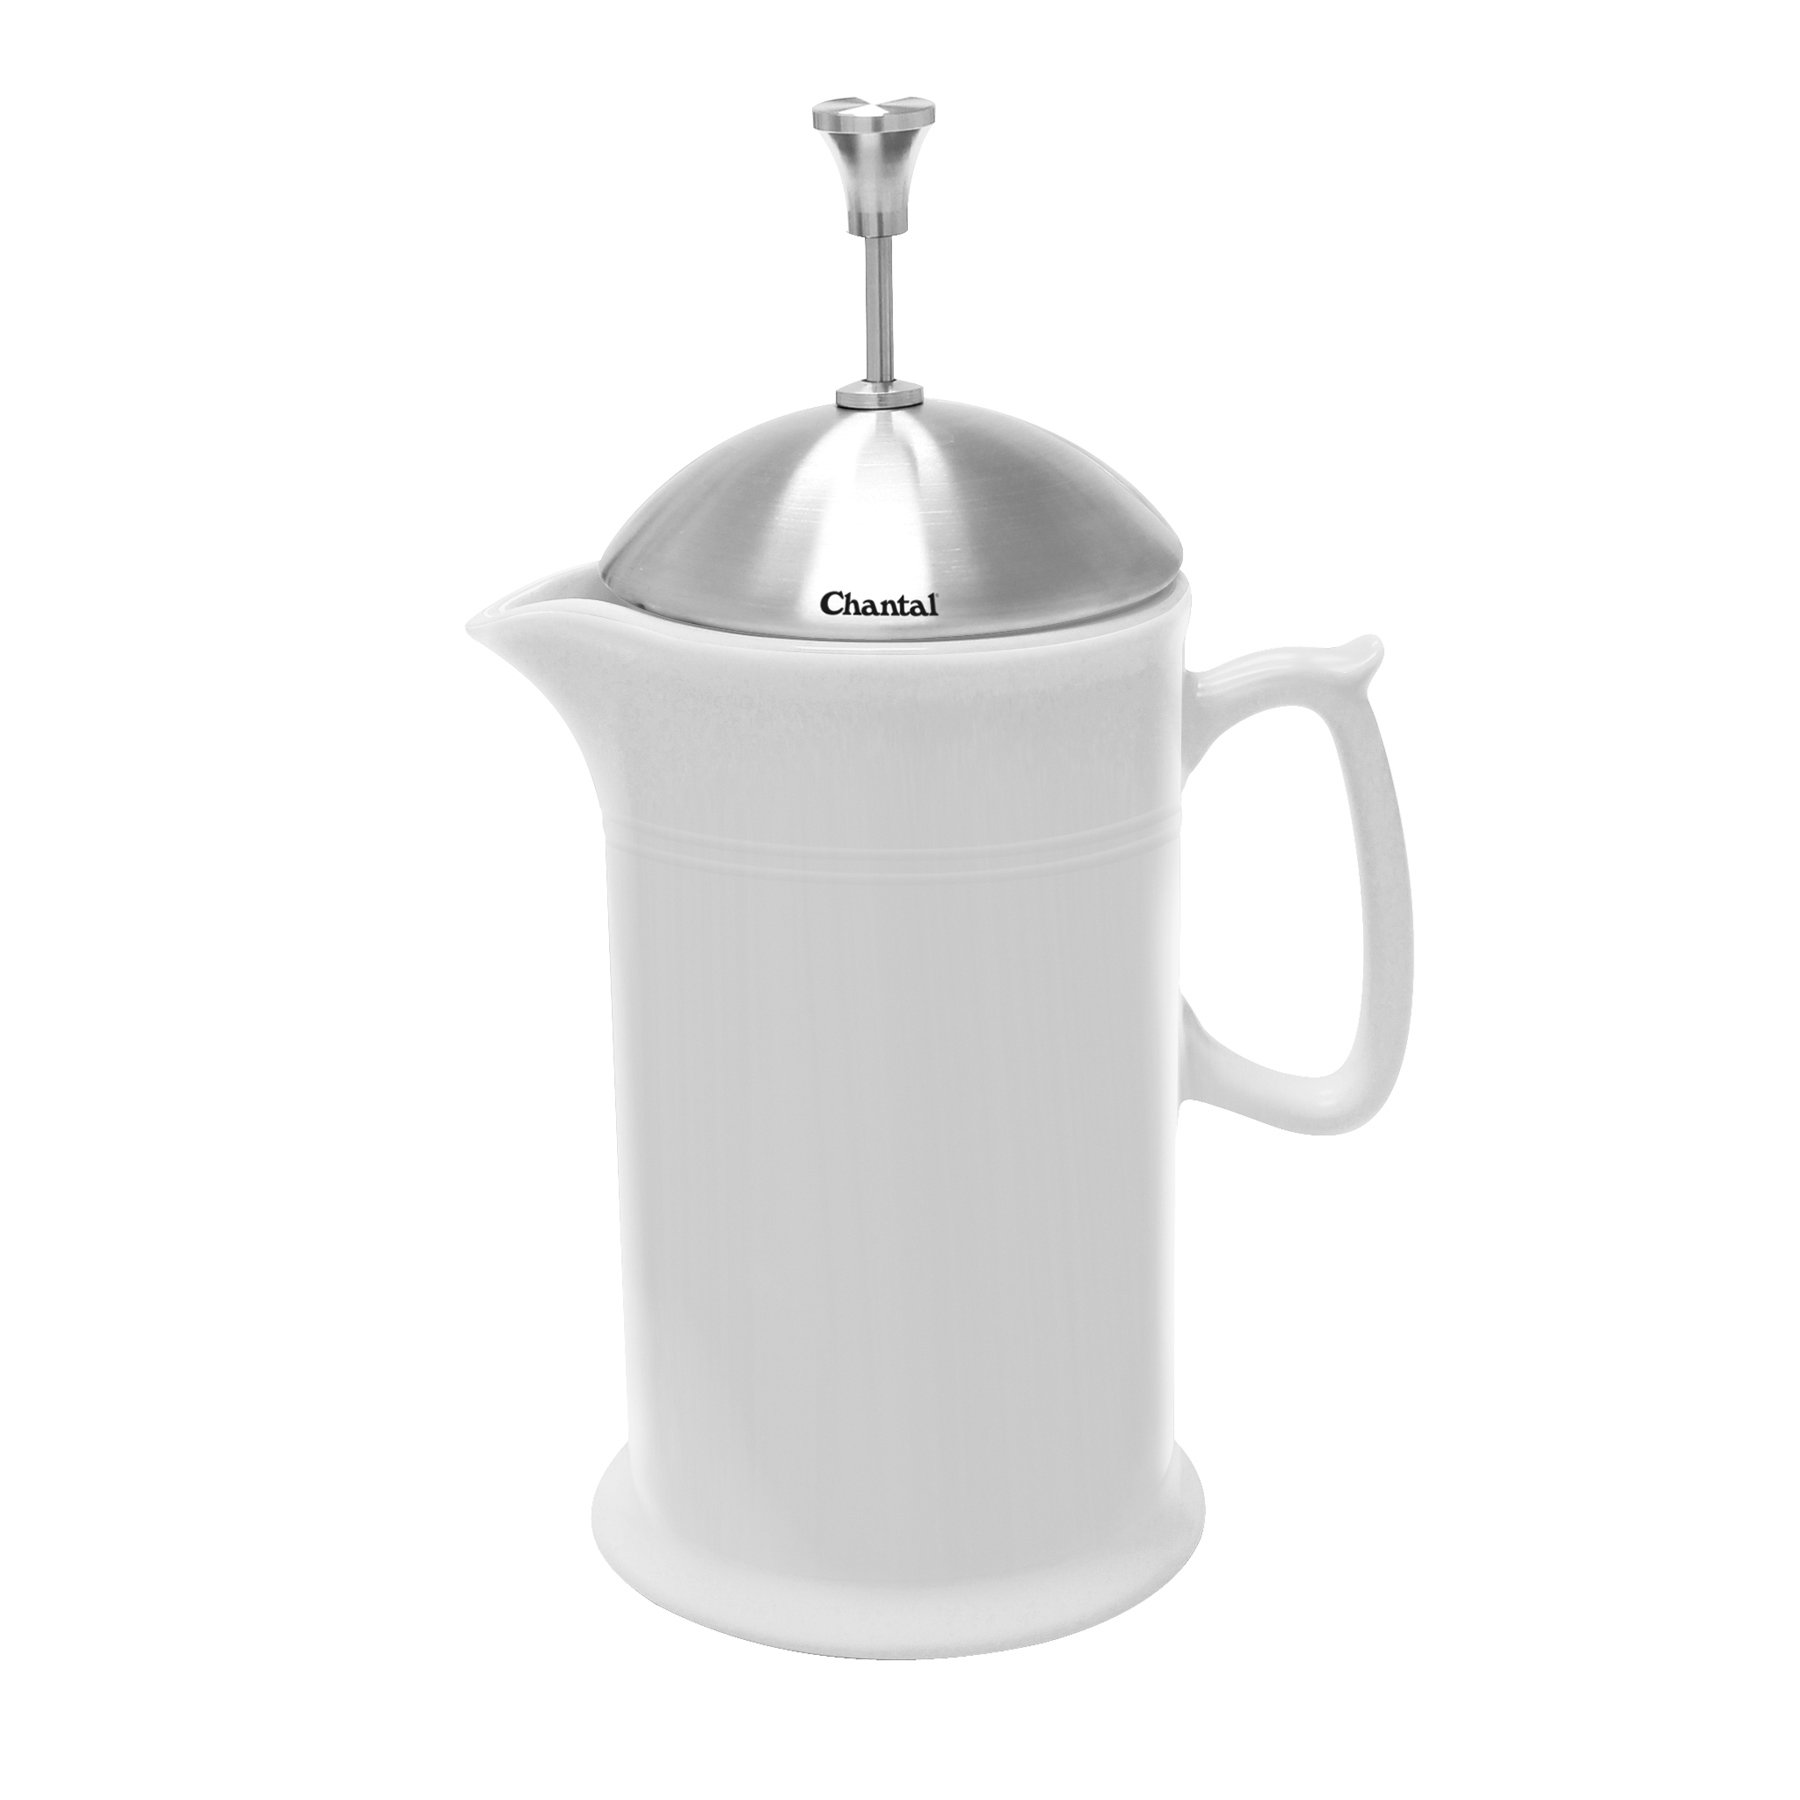 Chantal 92-FP28 SW Ceramic French Press with Stainless Steel Plunger/Lid, White